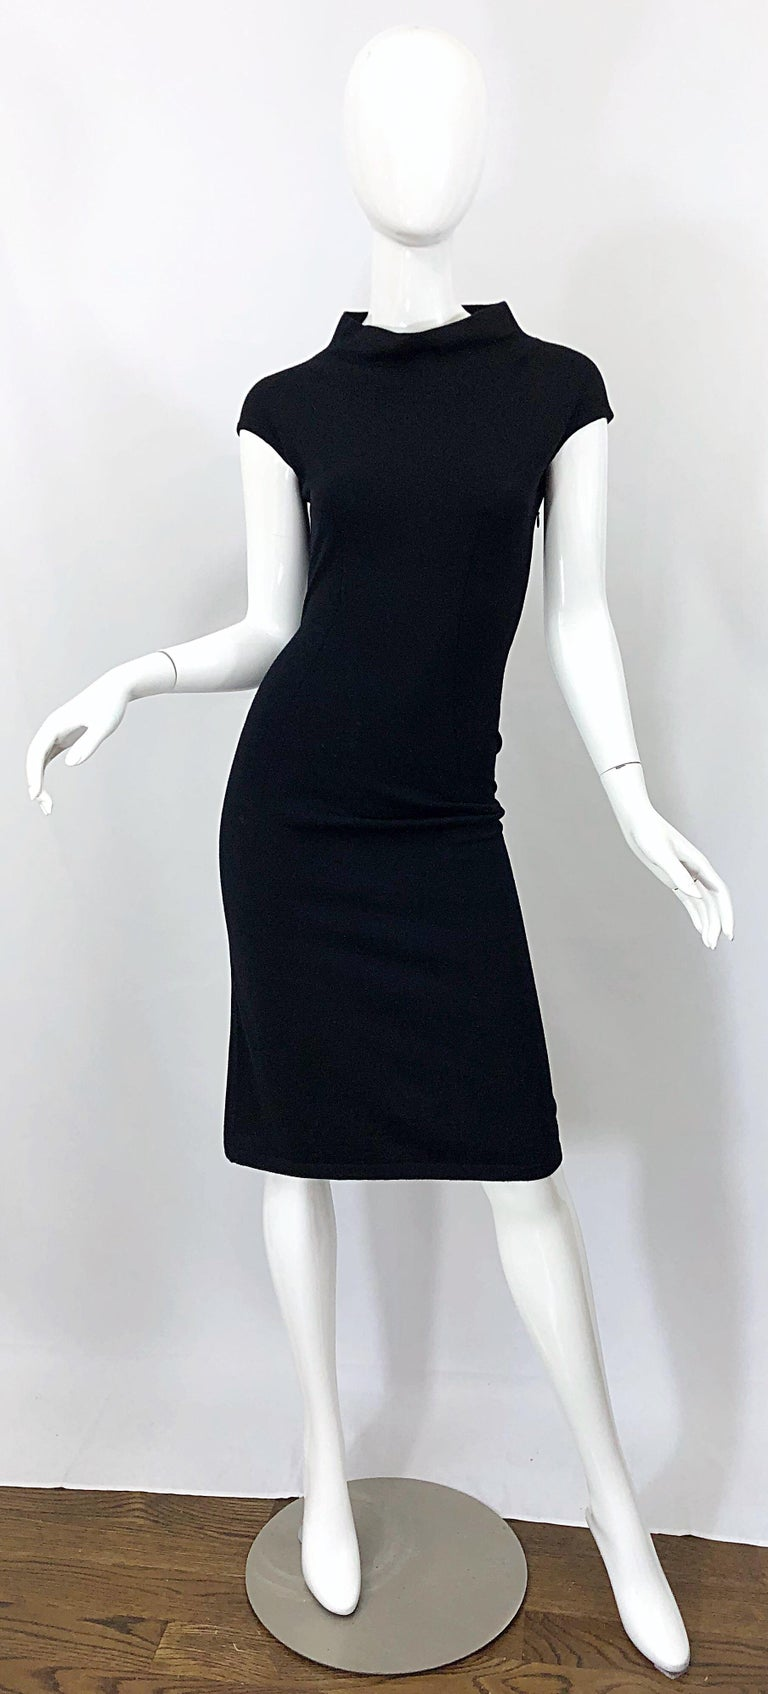 Vintage Azzedine Alaia 1980s Black Lightweight Wool Cap Sleeve Bodycon 80s Dress In Excellent Condition For Sale In Chicago, IL